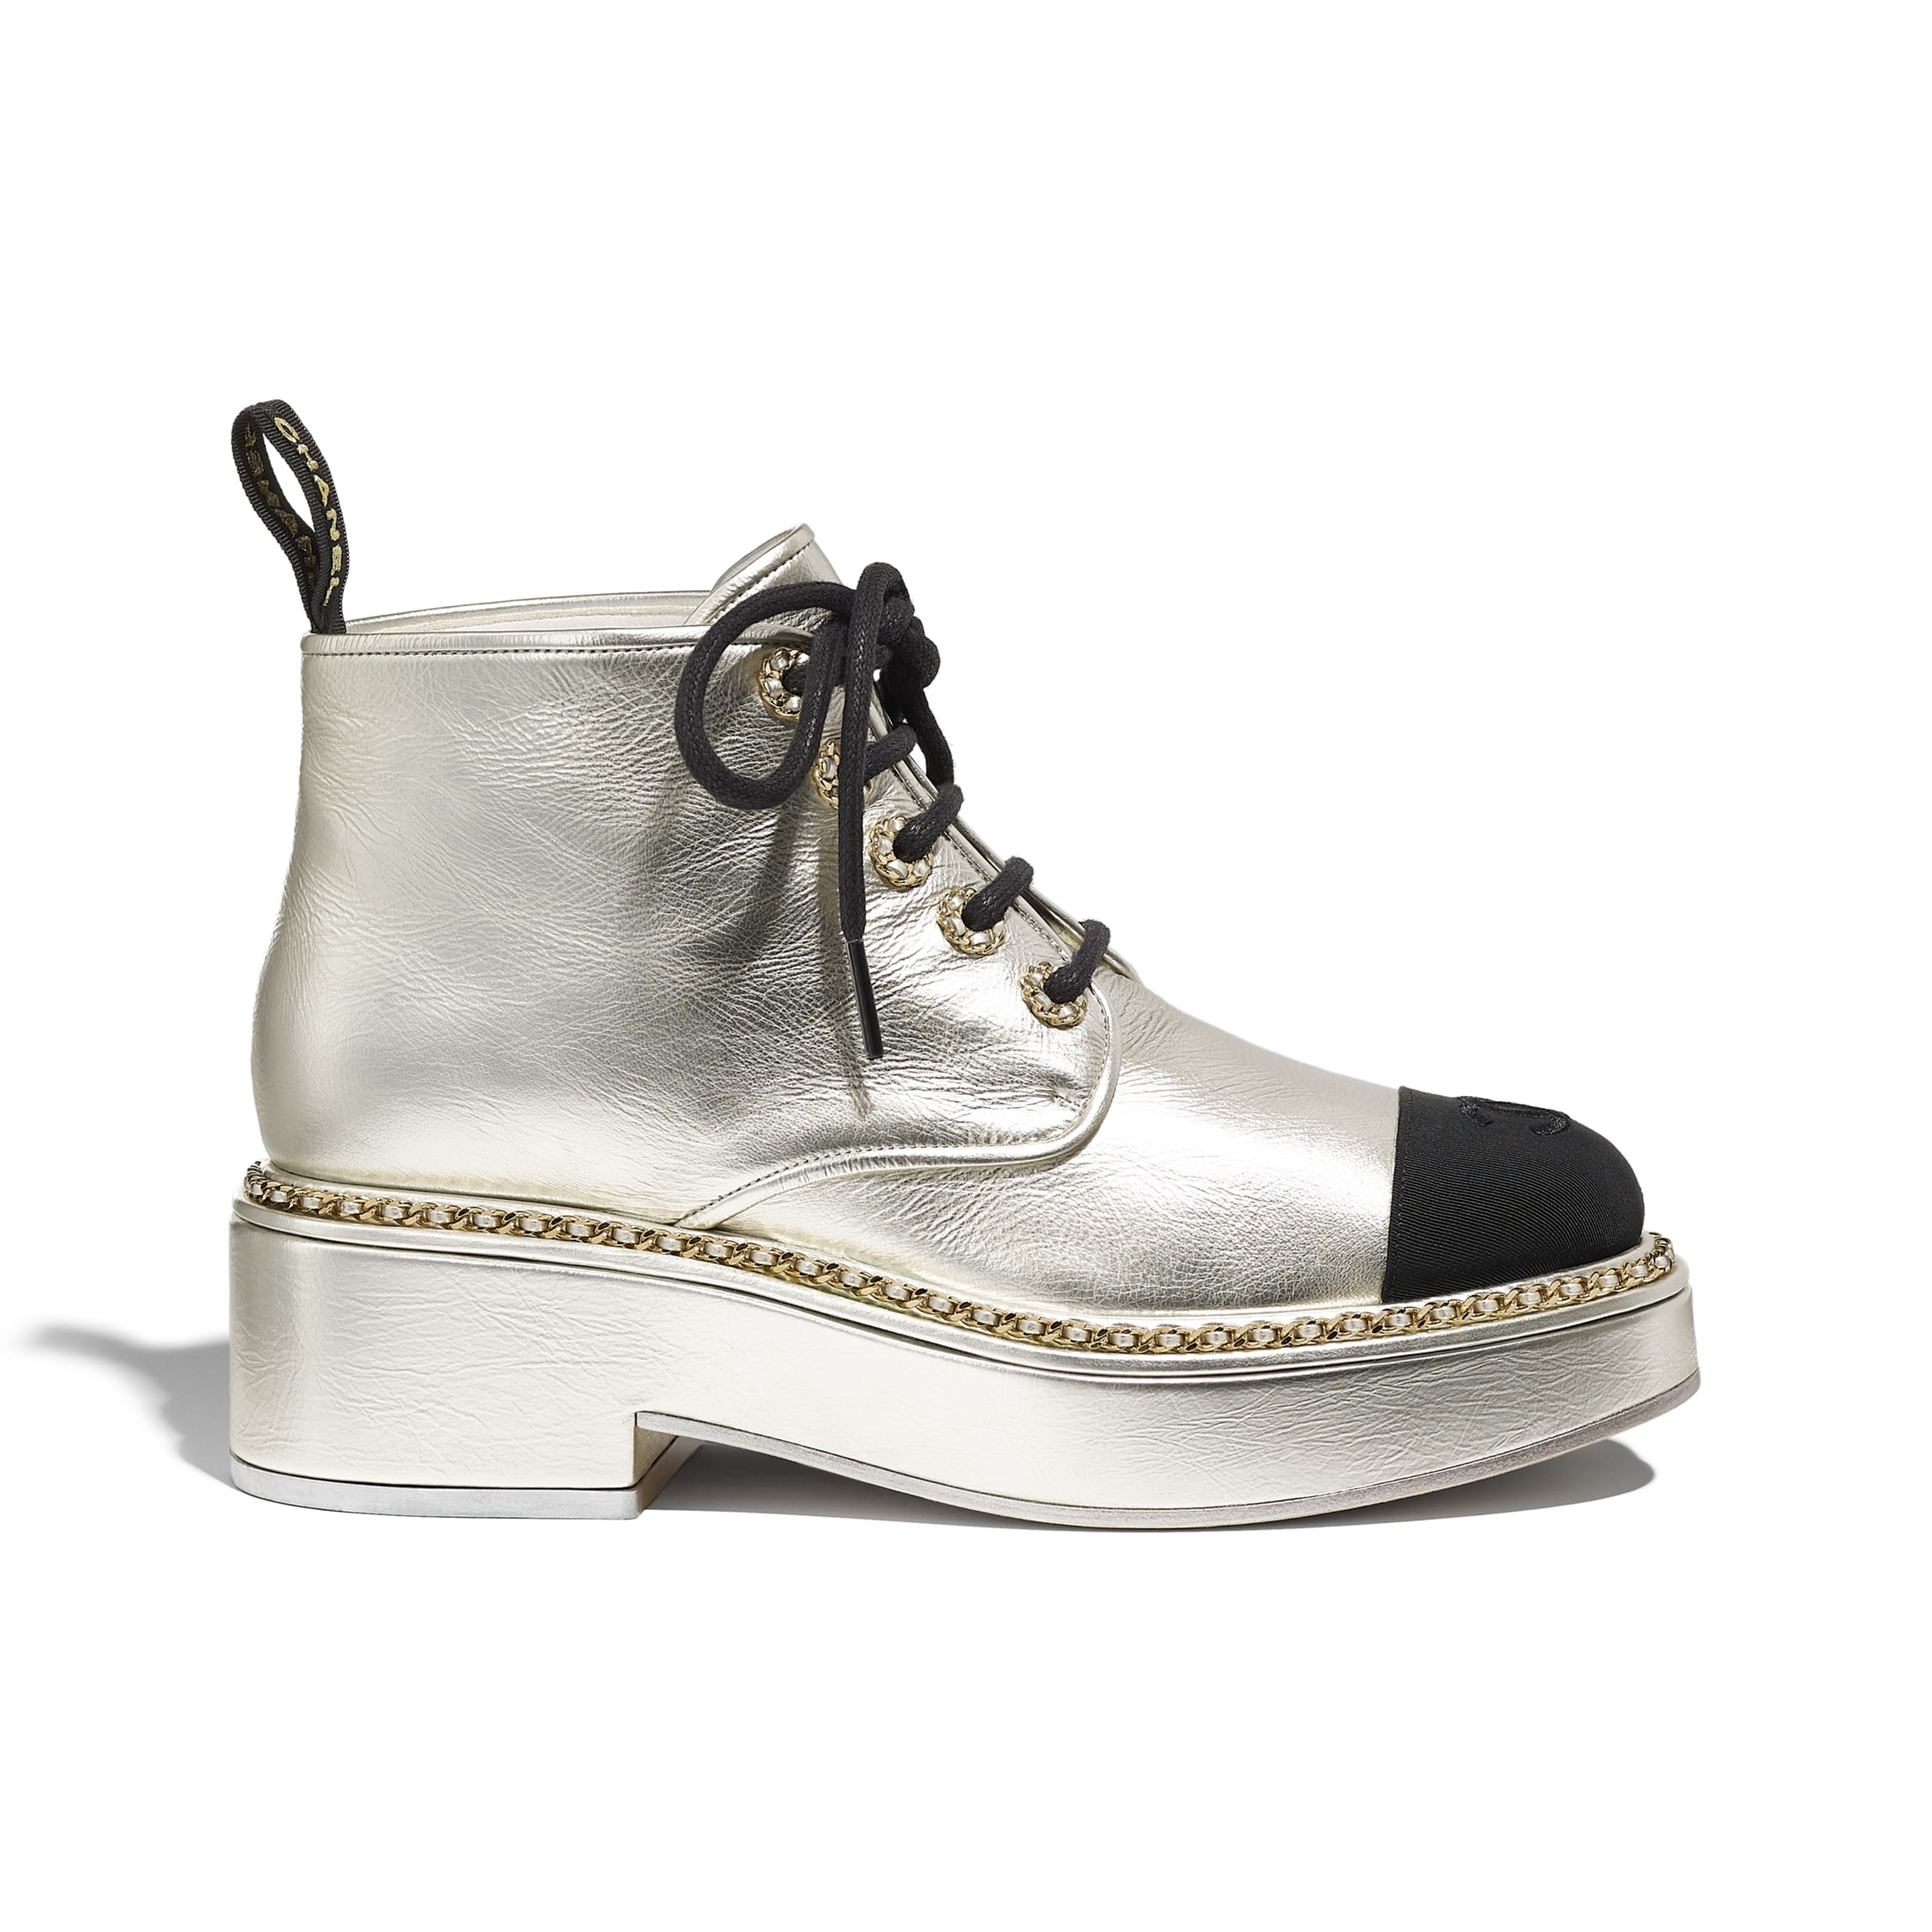 Lace-Ups - Silver & Black - Laminated Lambskin & Grosgrain - CHANEL - Default view - see standard sized version